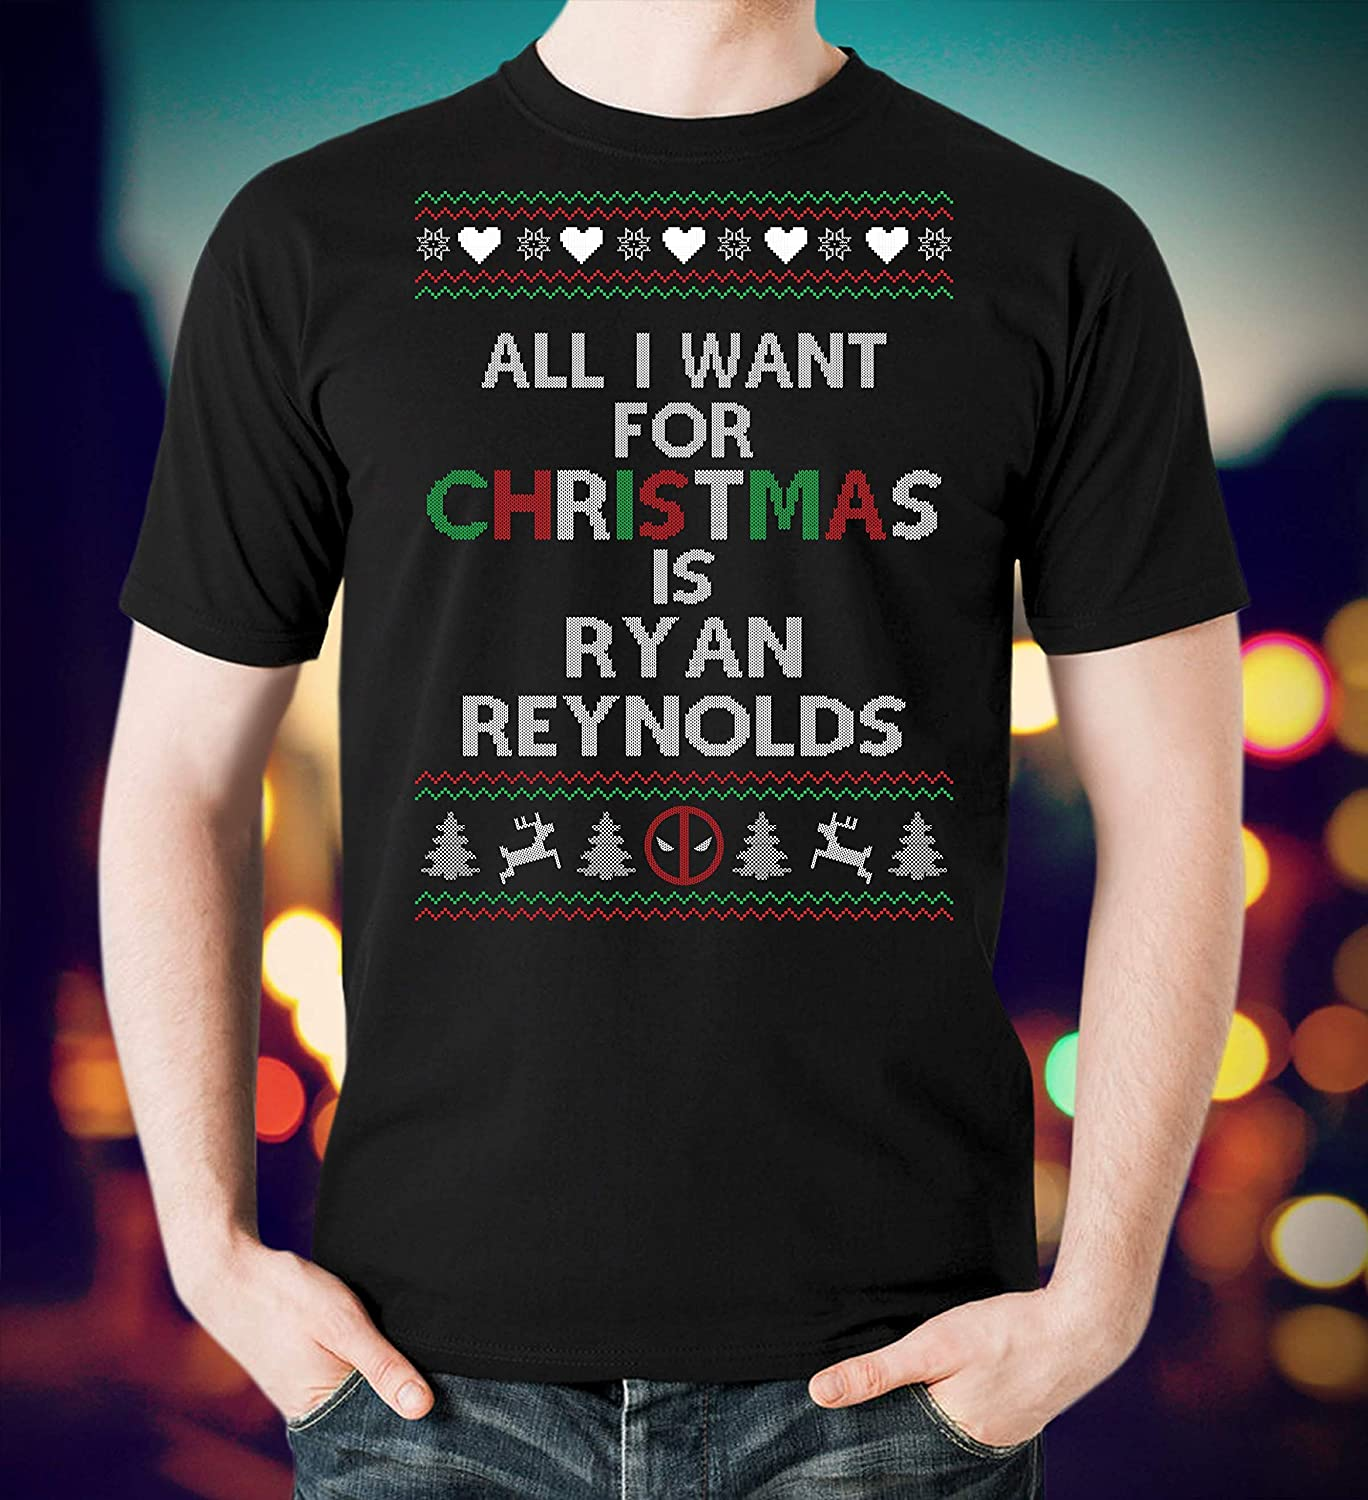 : Deadpool Ugly Christmas Sweater I Want Ryan